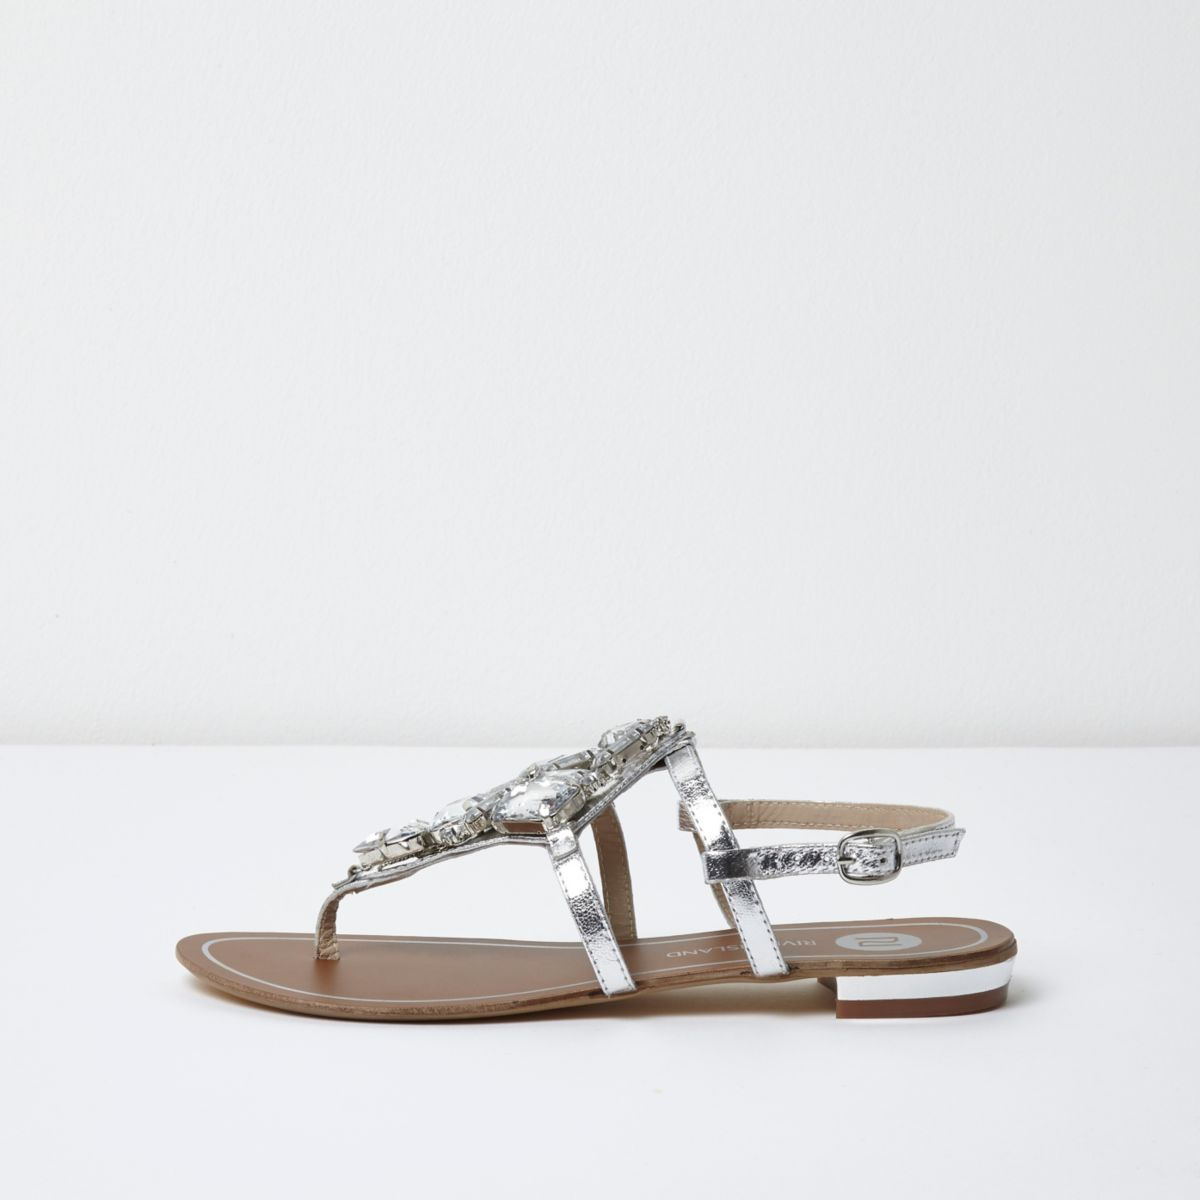 Silver metallic embellished flat sandals